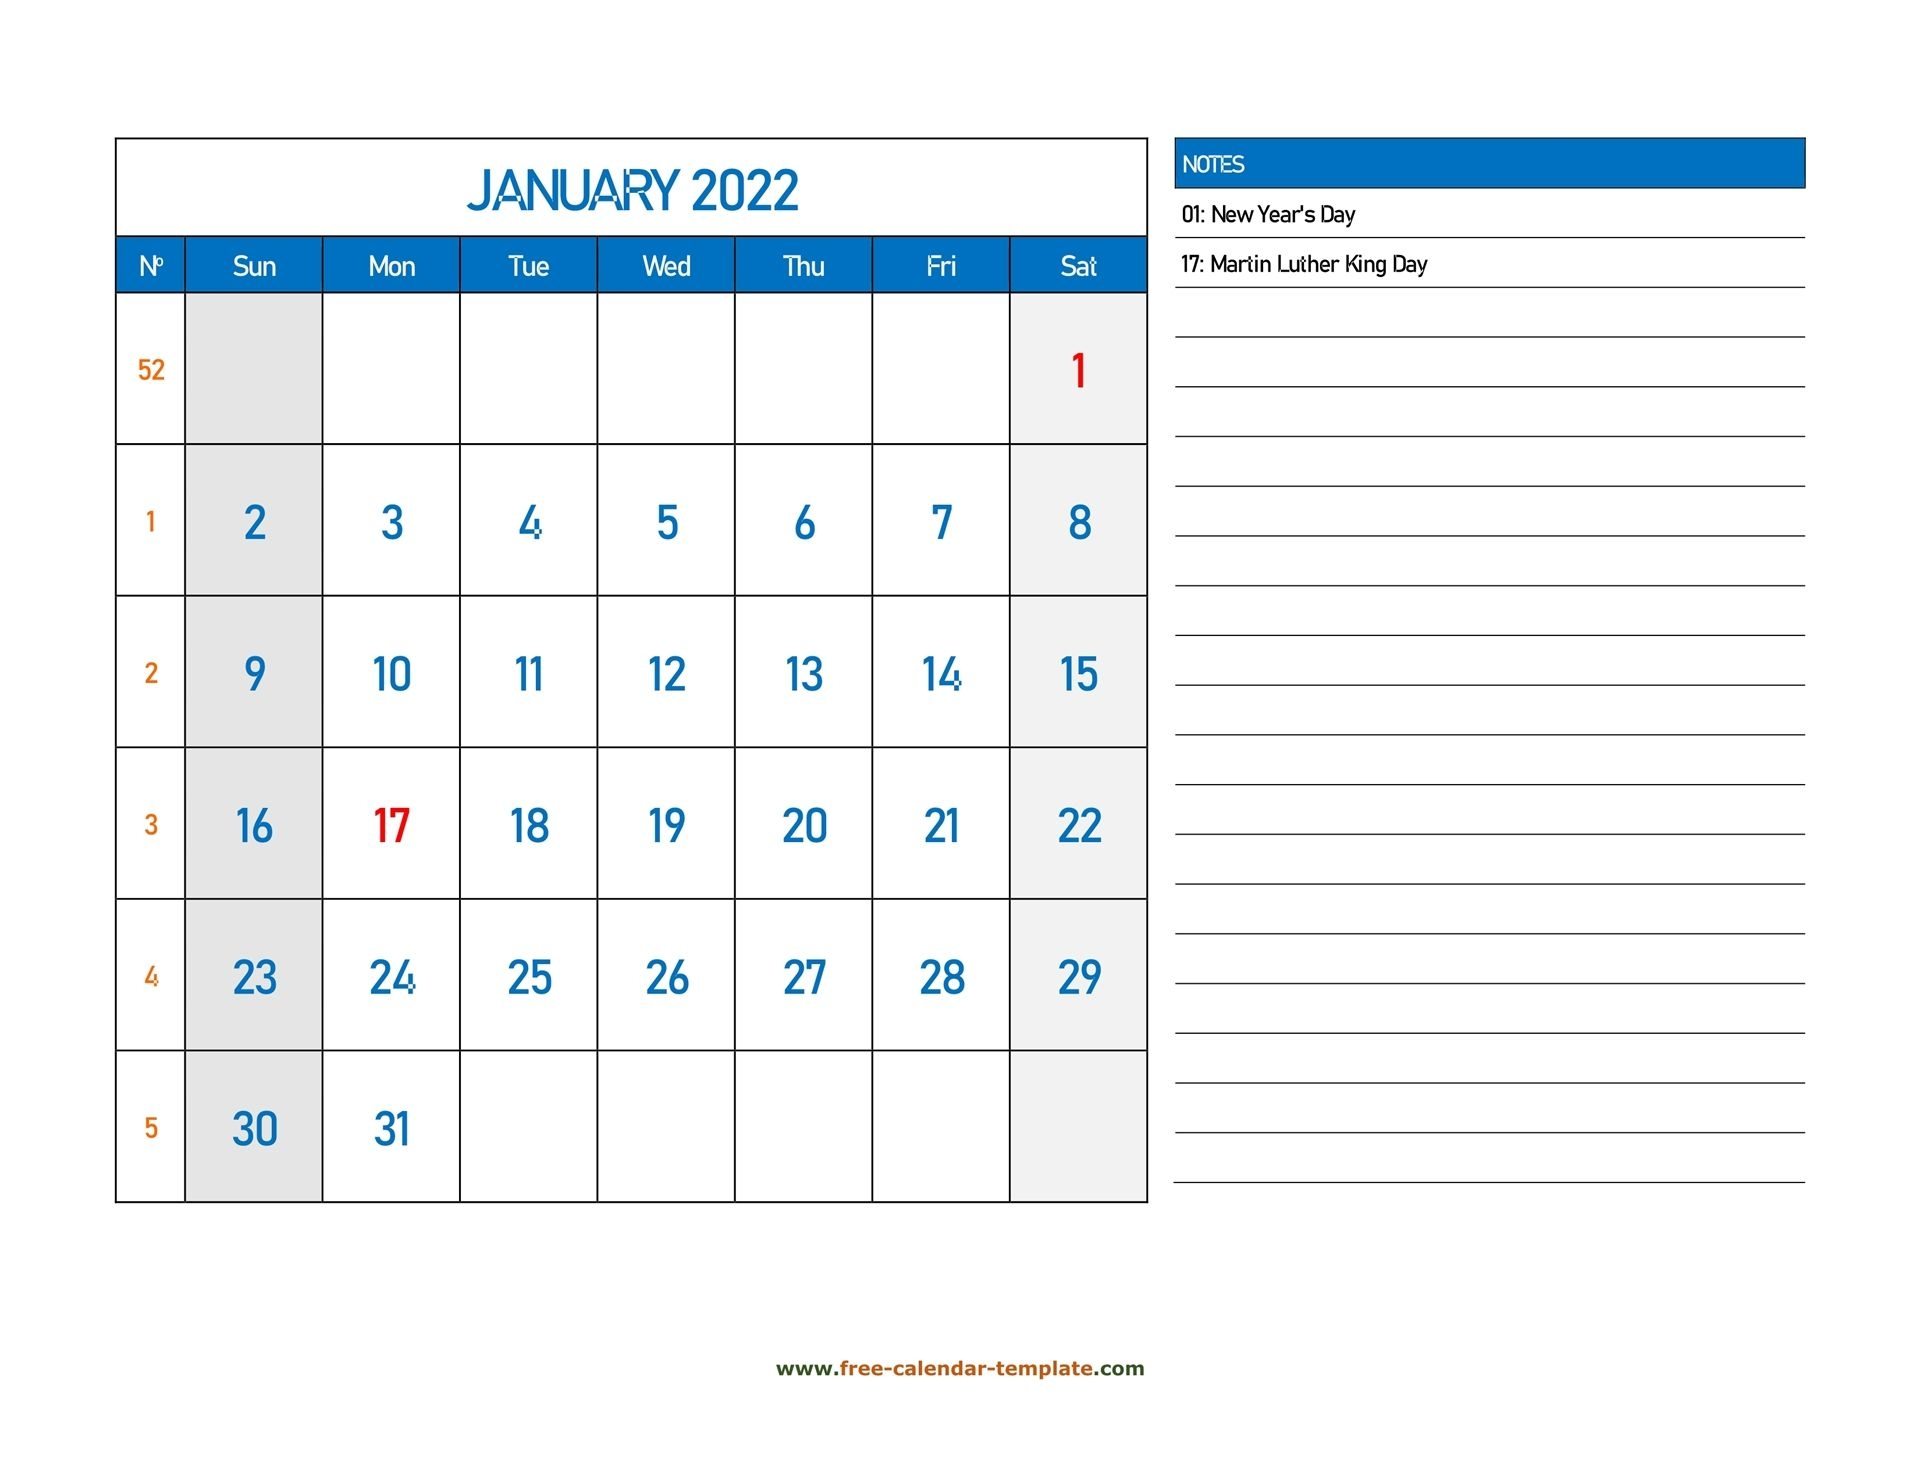 Monthly Calendar 2022 Grid Lines For Holidays And Notes